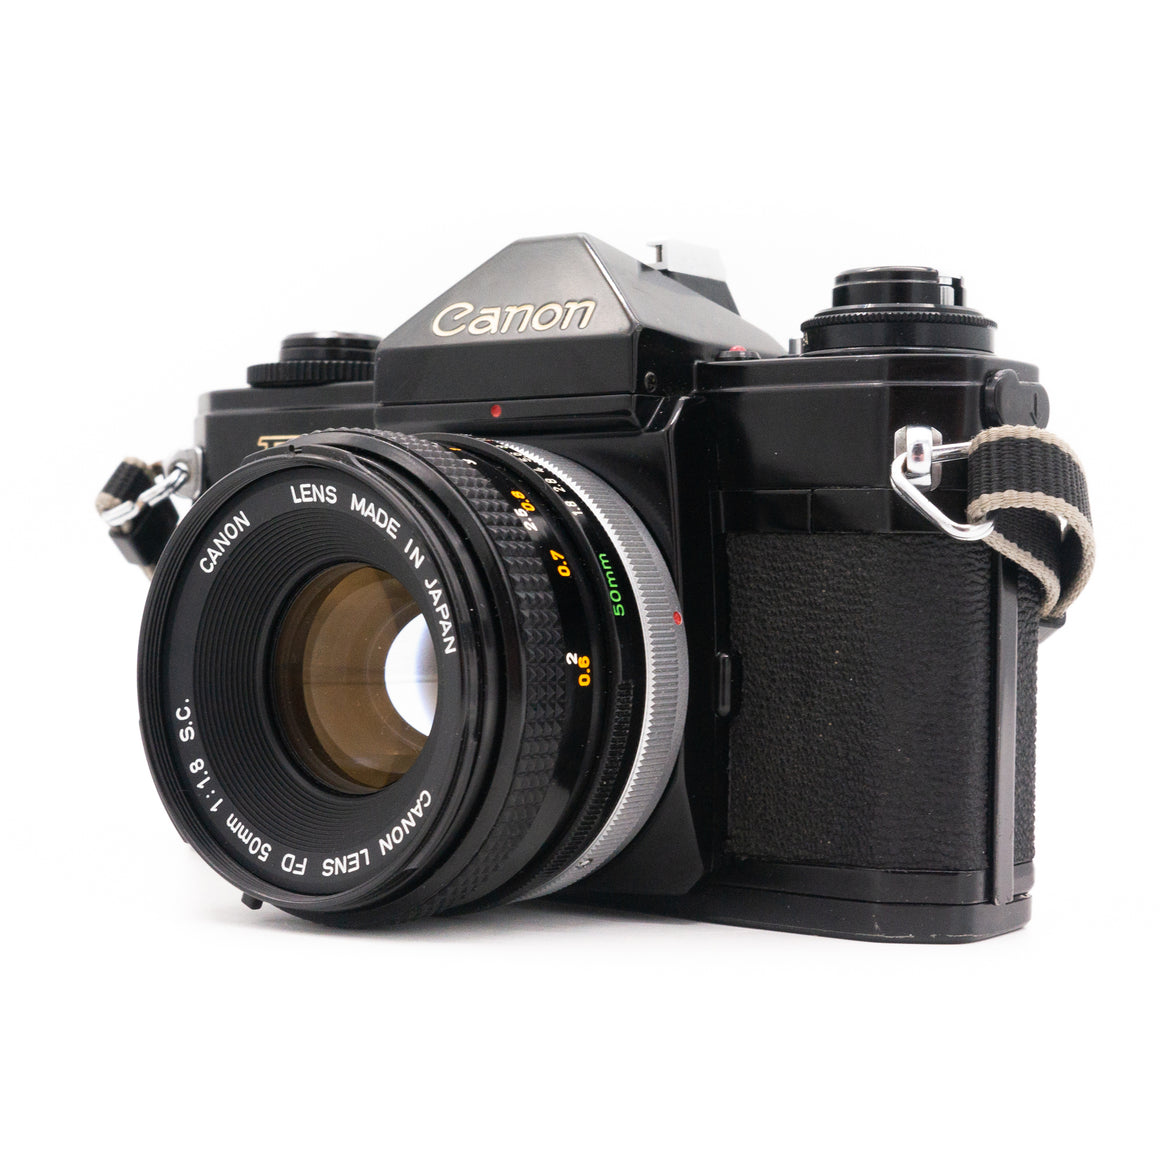 Canon EF SLR Camera with Canon FD 50mm f/1.8 Lens